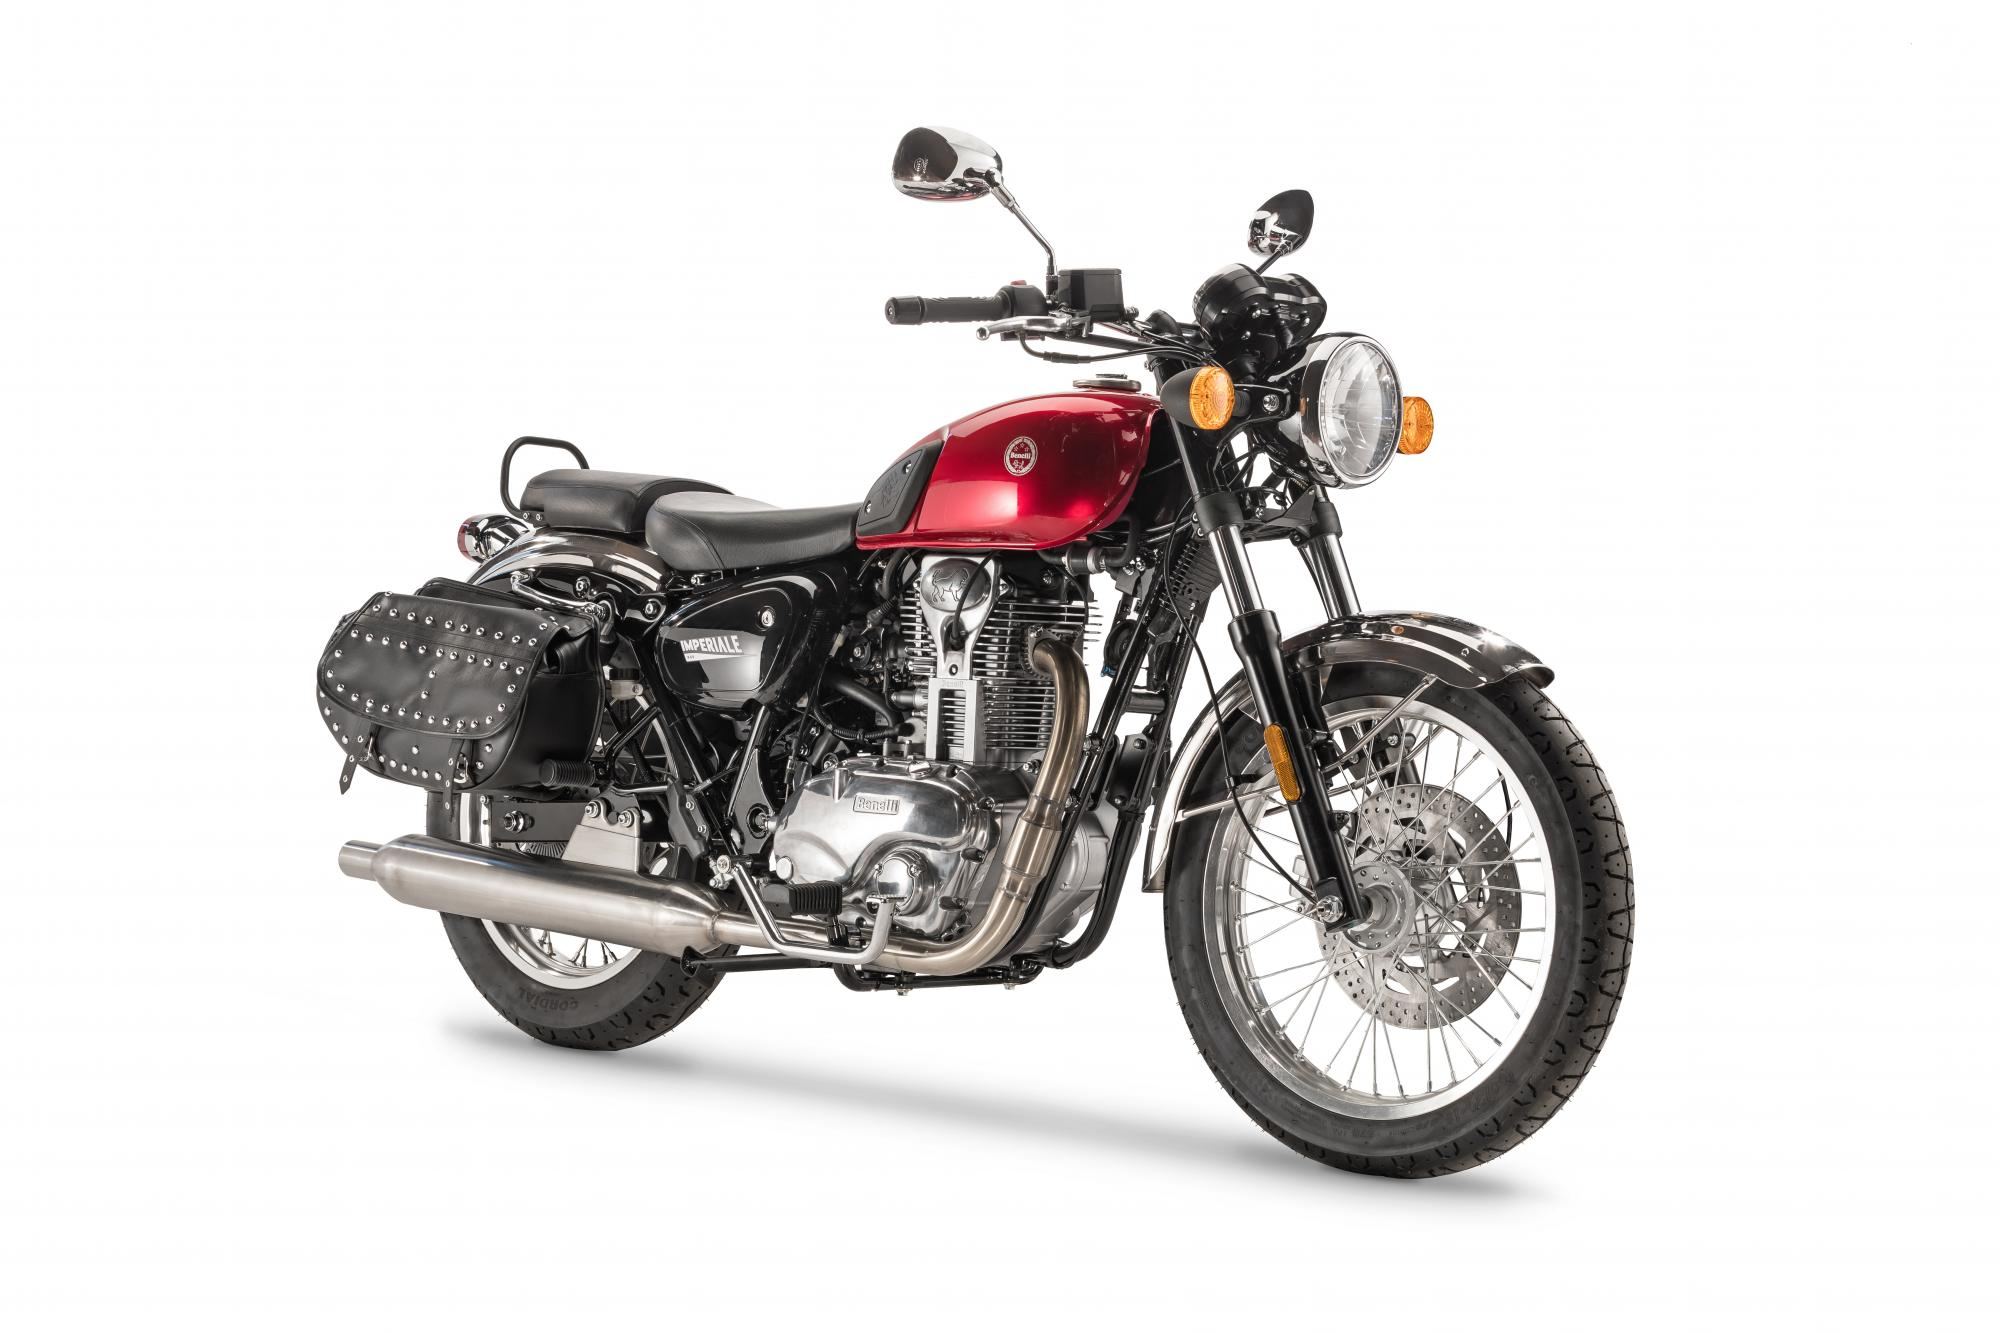 Benelli imperiale 400 royal enfield classic 350 rival to launch before july